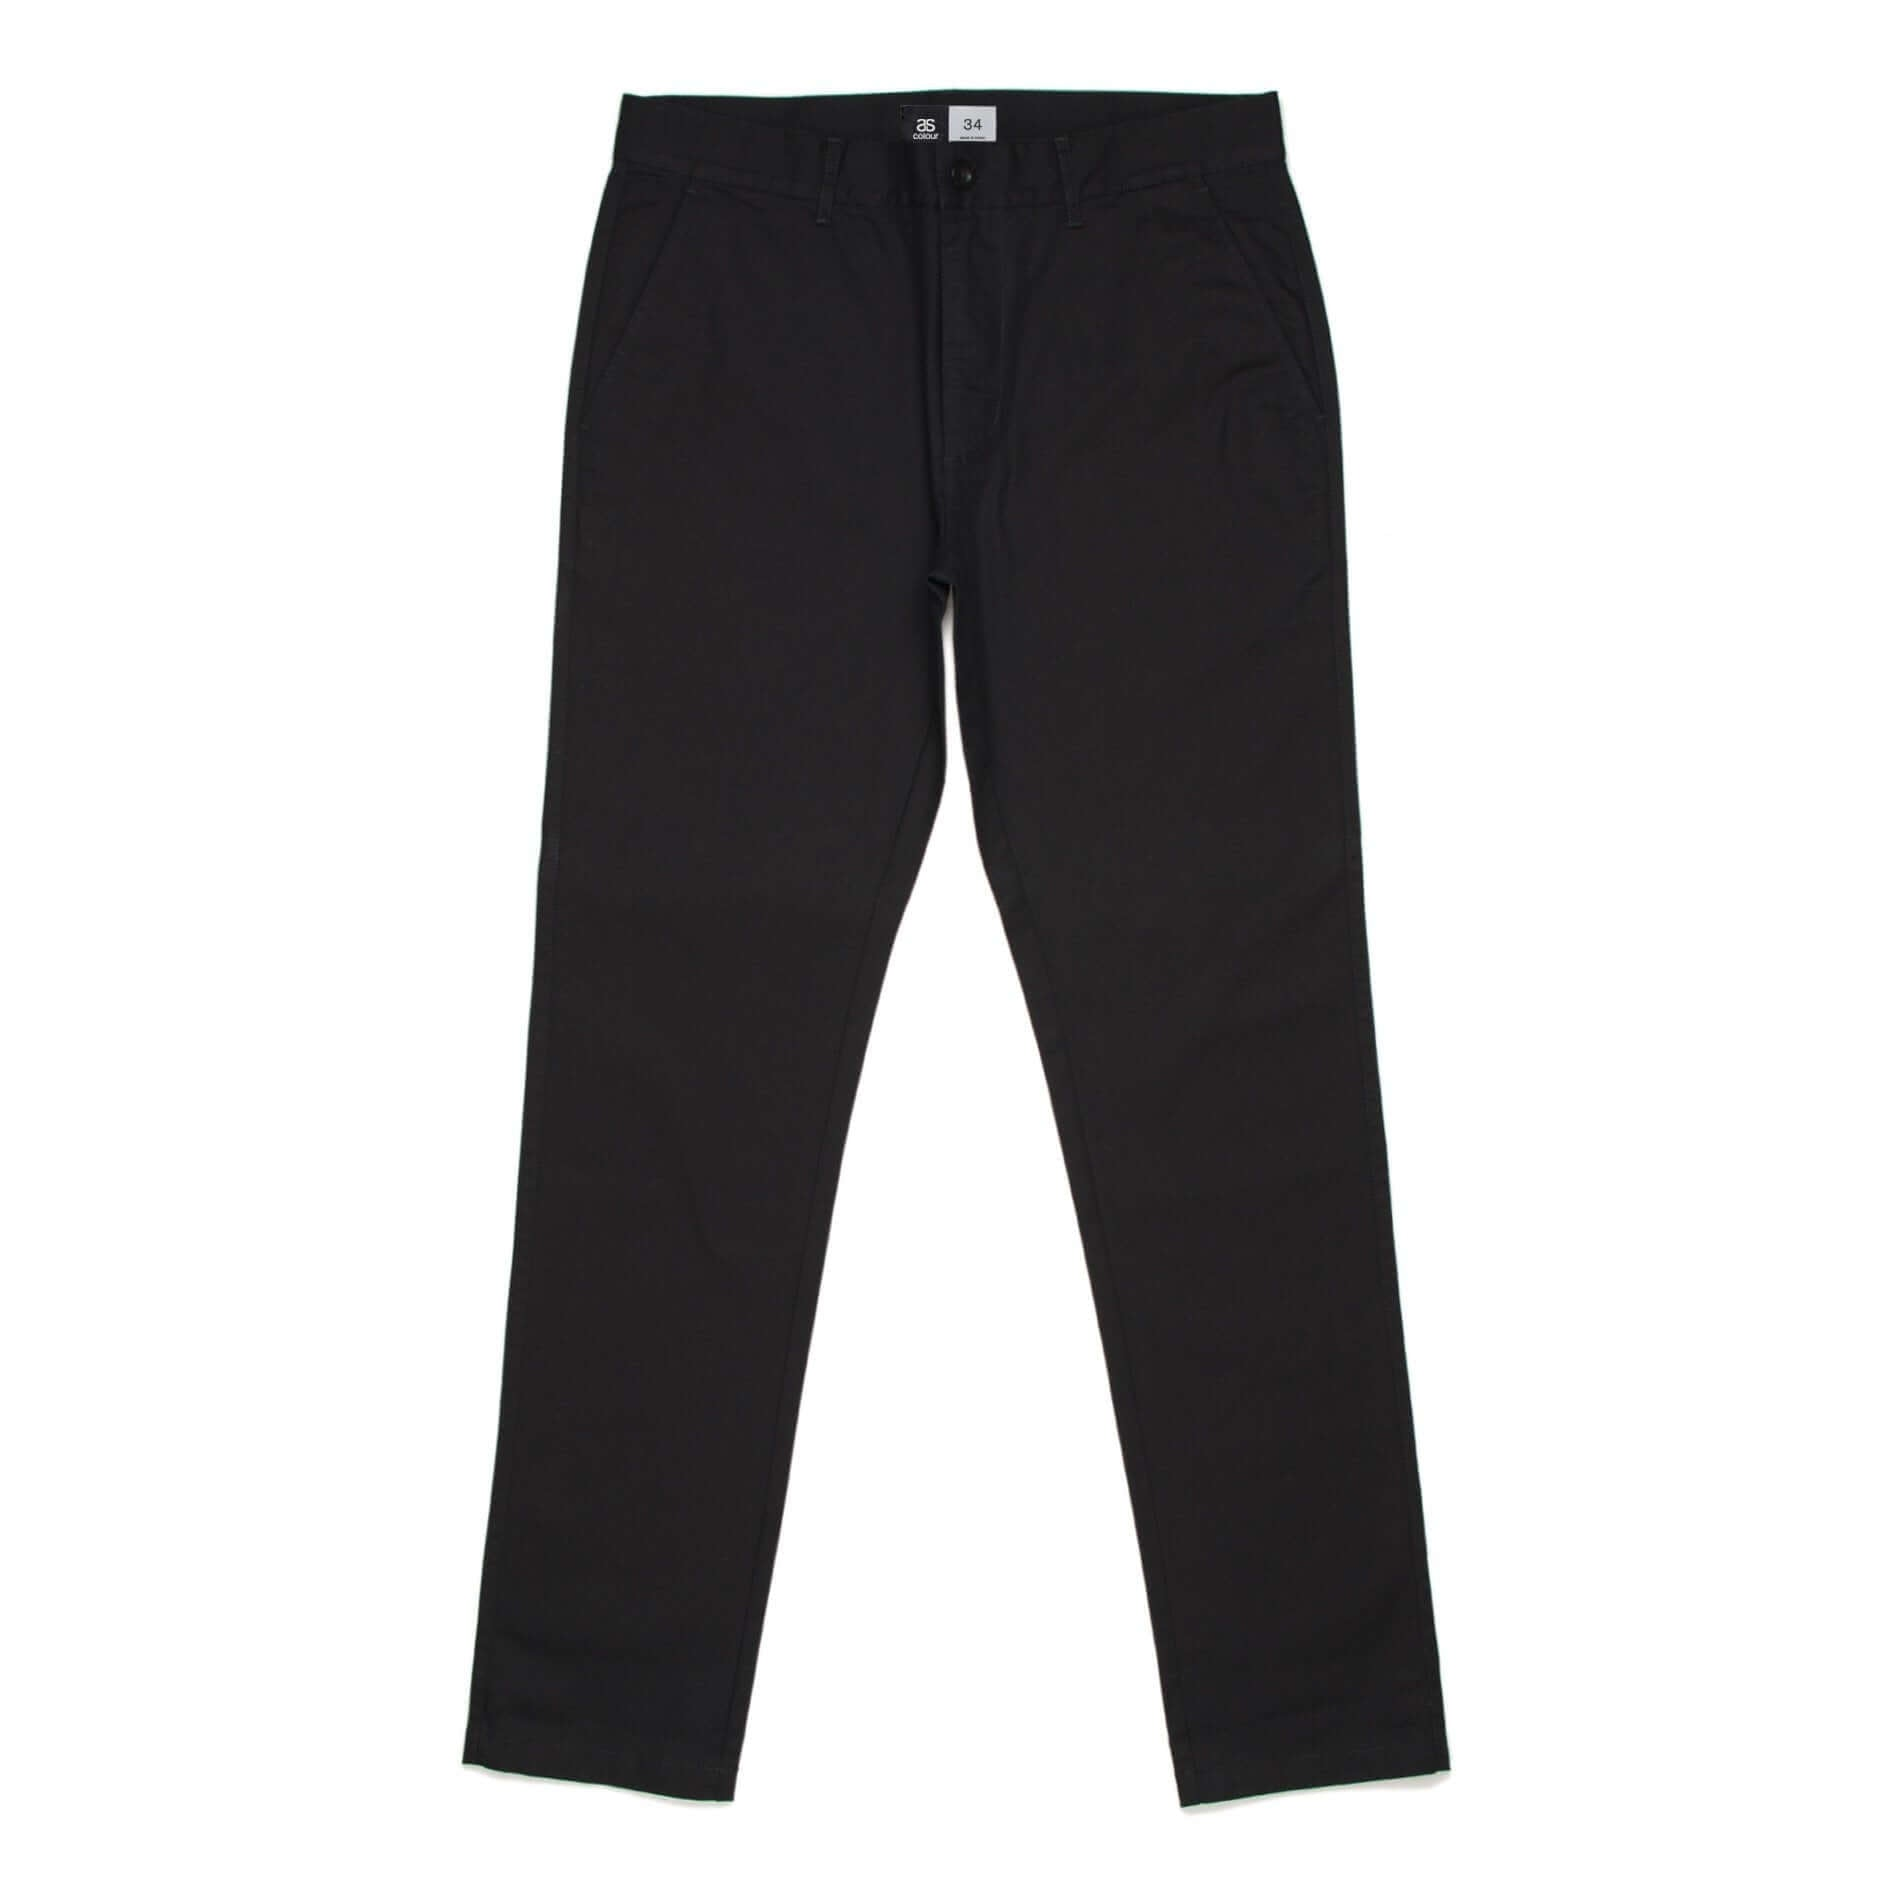 AS Colour STANDARD PANT - Black